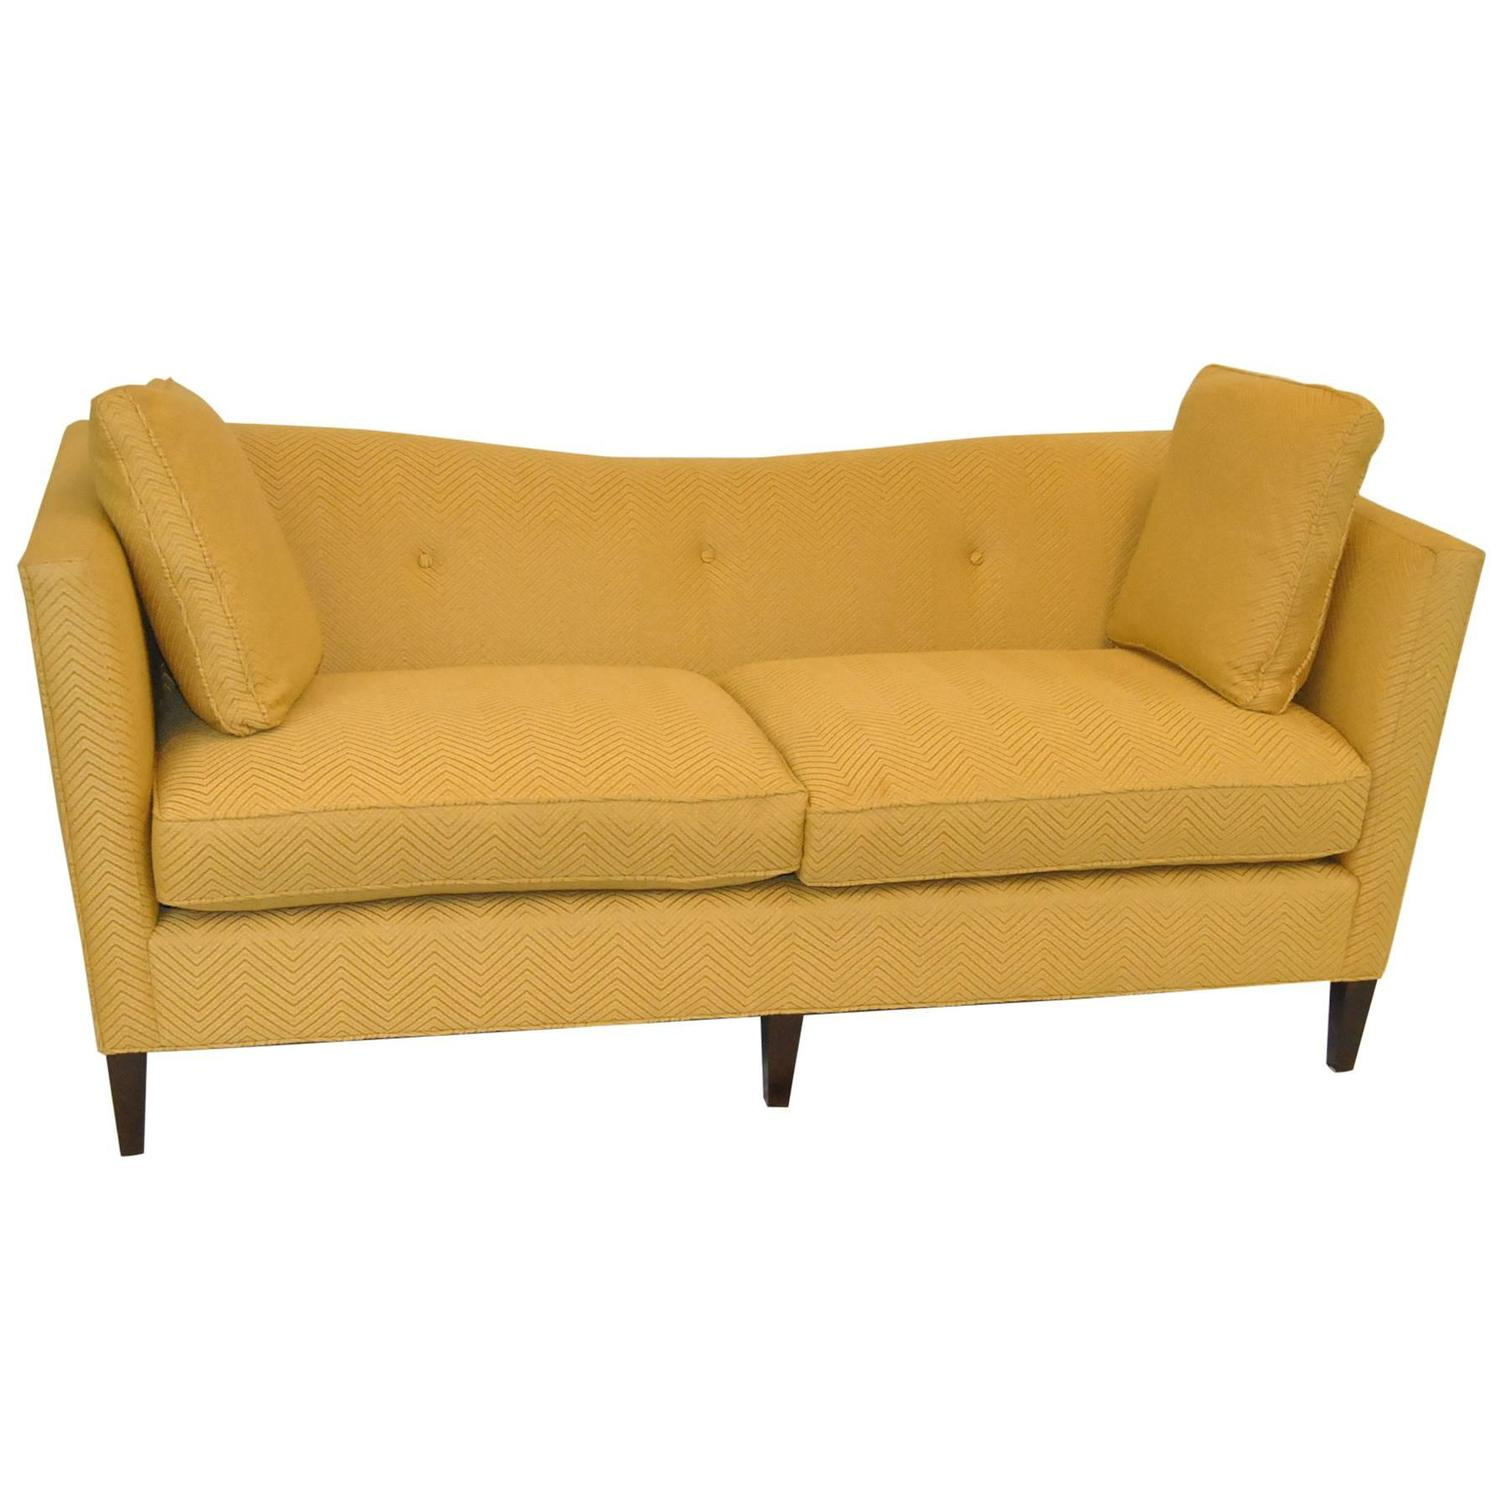 French Tuxedo Butter Yellow Sofa by Baker Furniture, Baker Classic Collection For Sale at 1stdibs